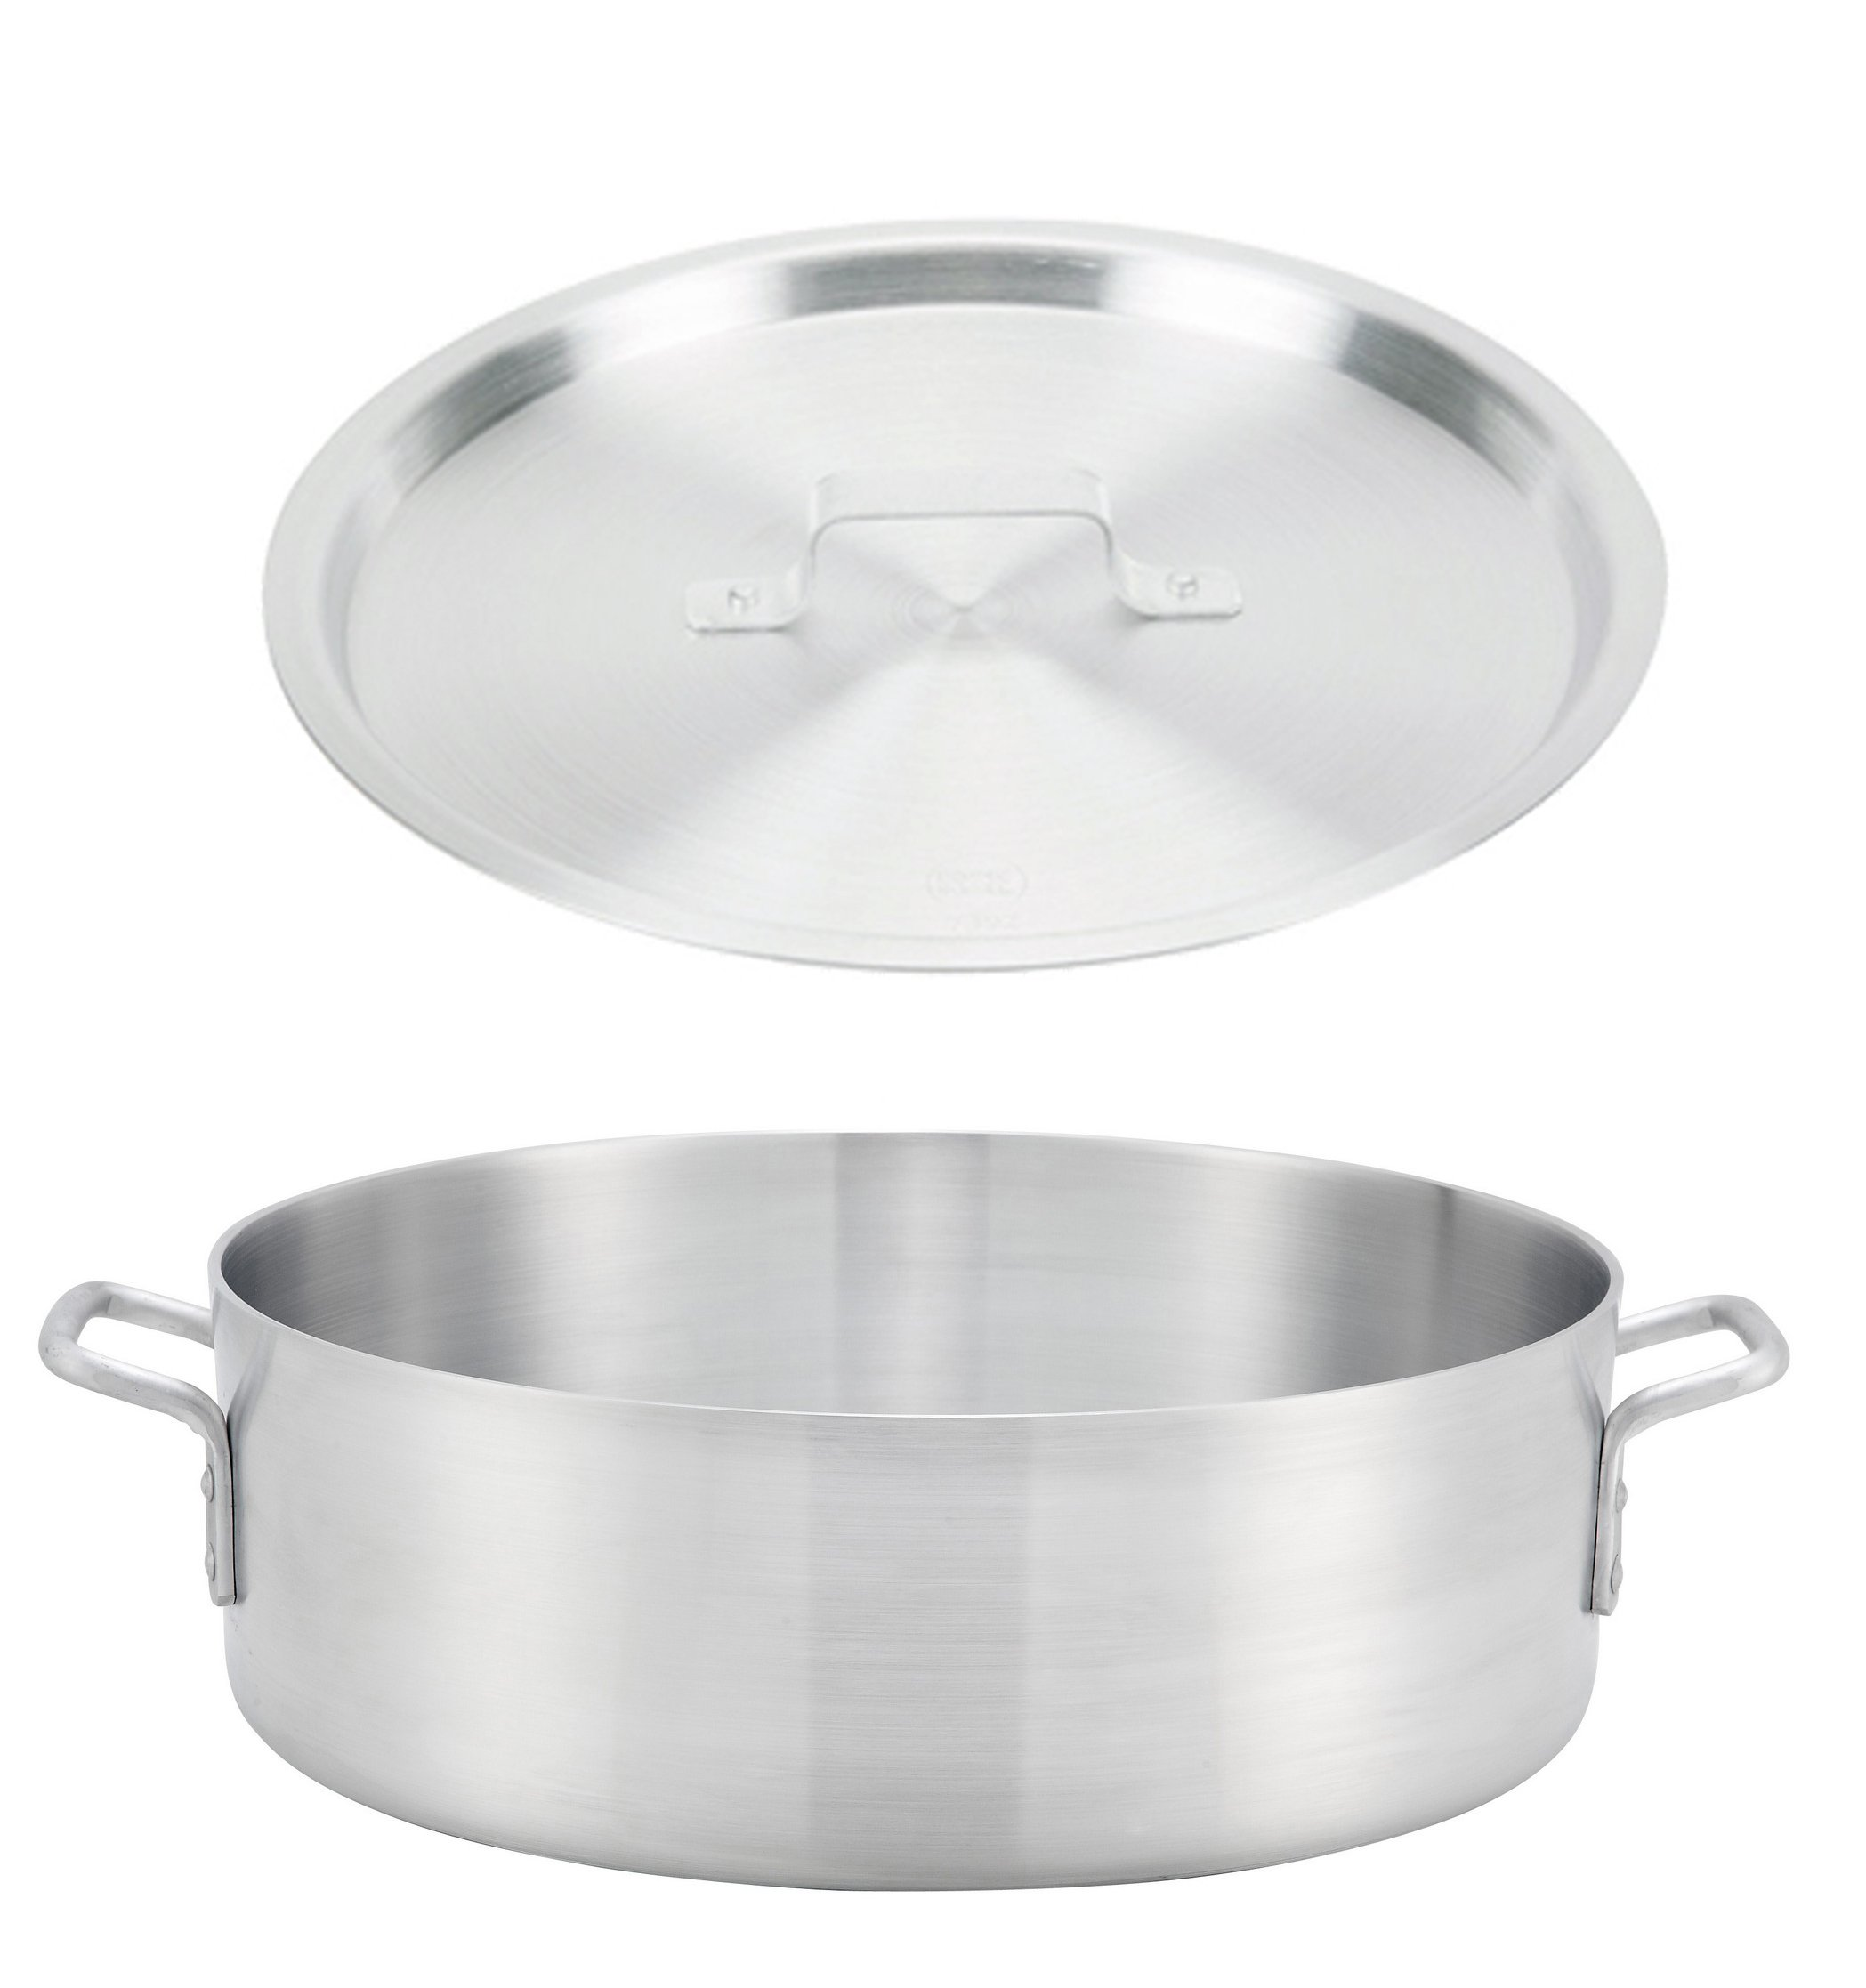 Winco ALB-18, 18-Quart 15.8'' x 5.5'' Standard Heavy Aluminum Brazier Pan with Cover, Heavy-Duty Commercial Grade Braiser Pan with Lid, NSF